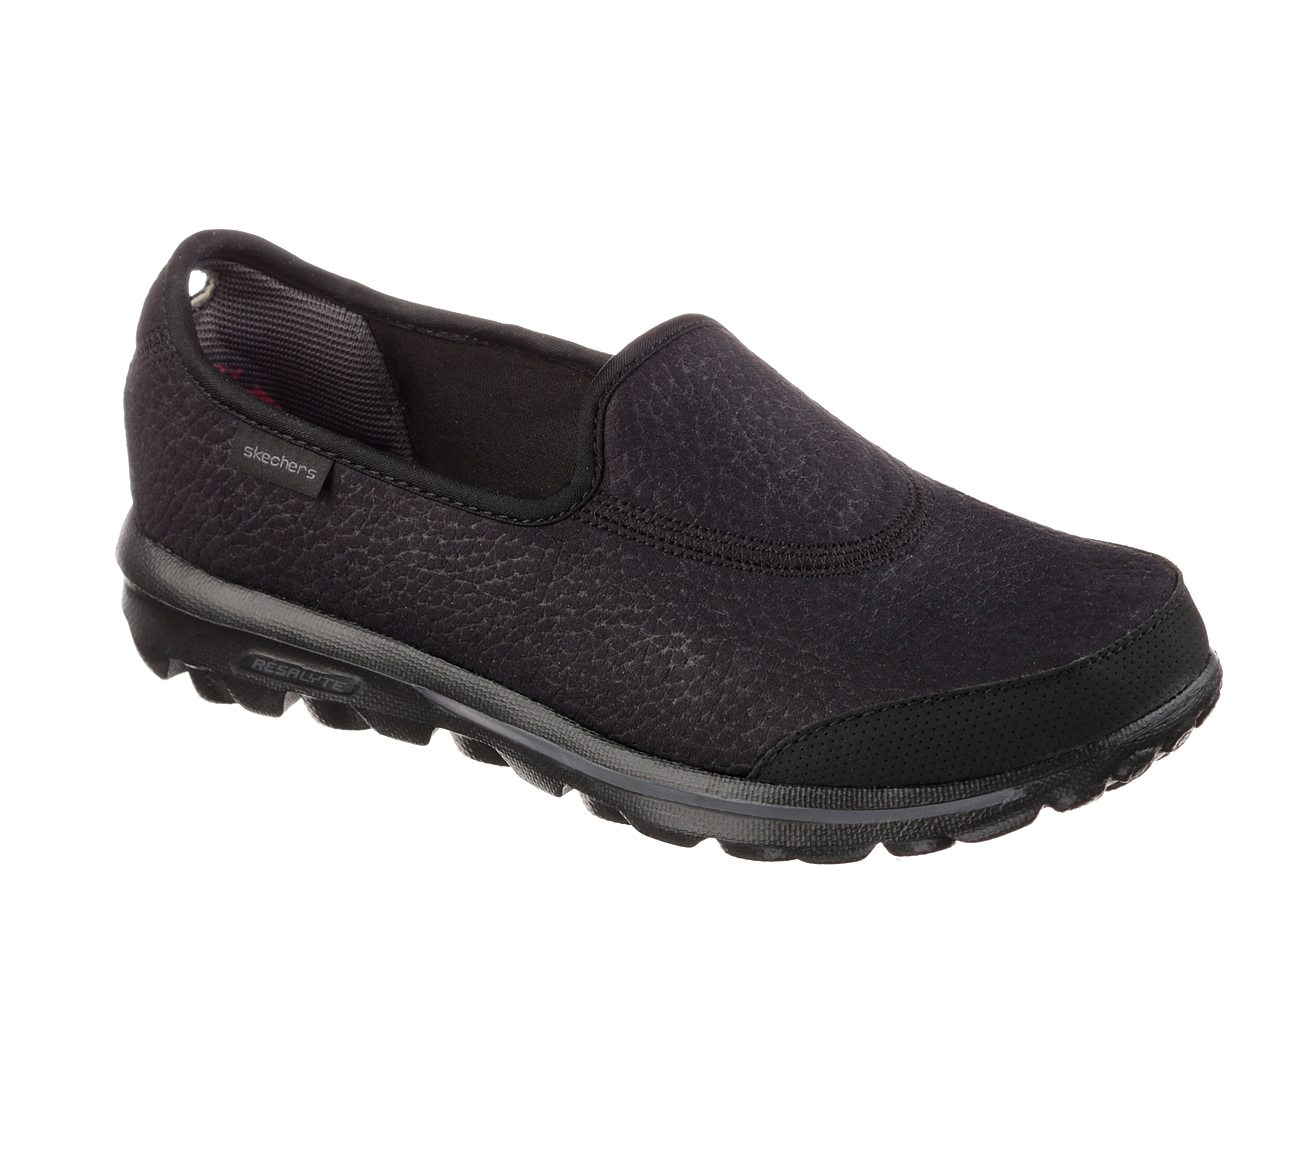 Skechers Women's Go Walk Aspire Walking Shoe Review